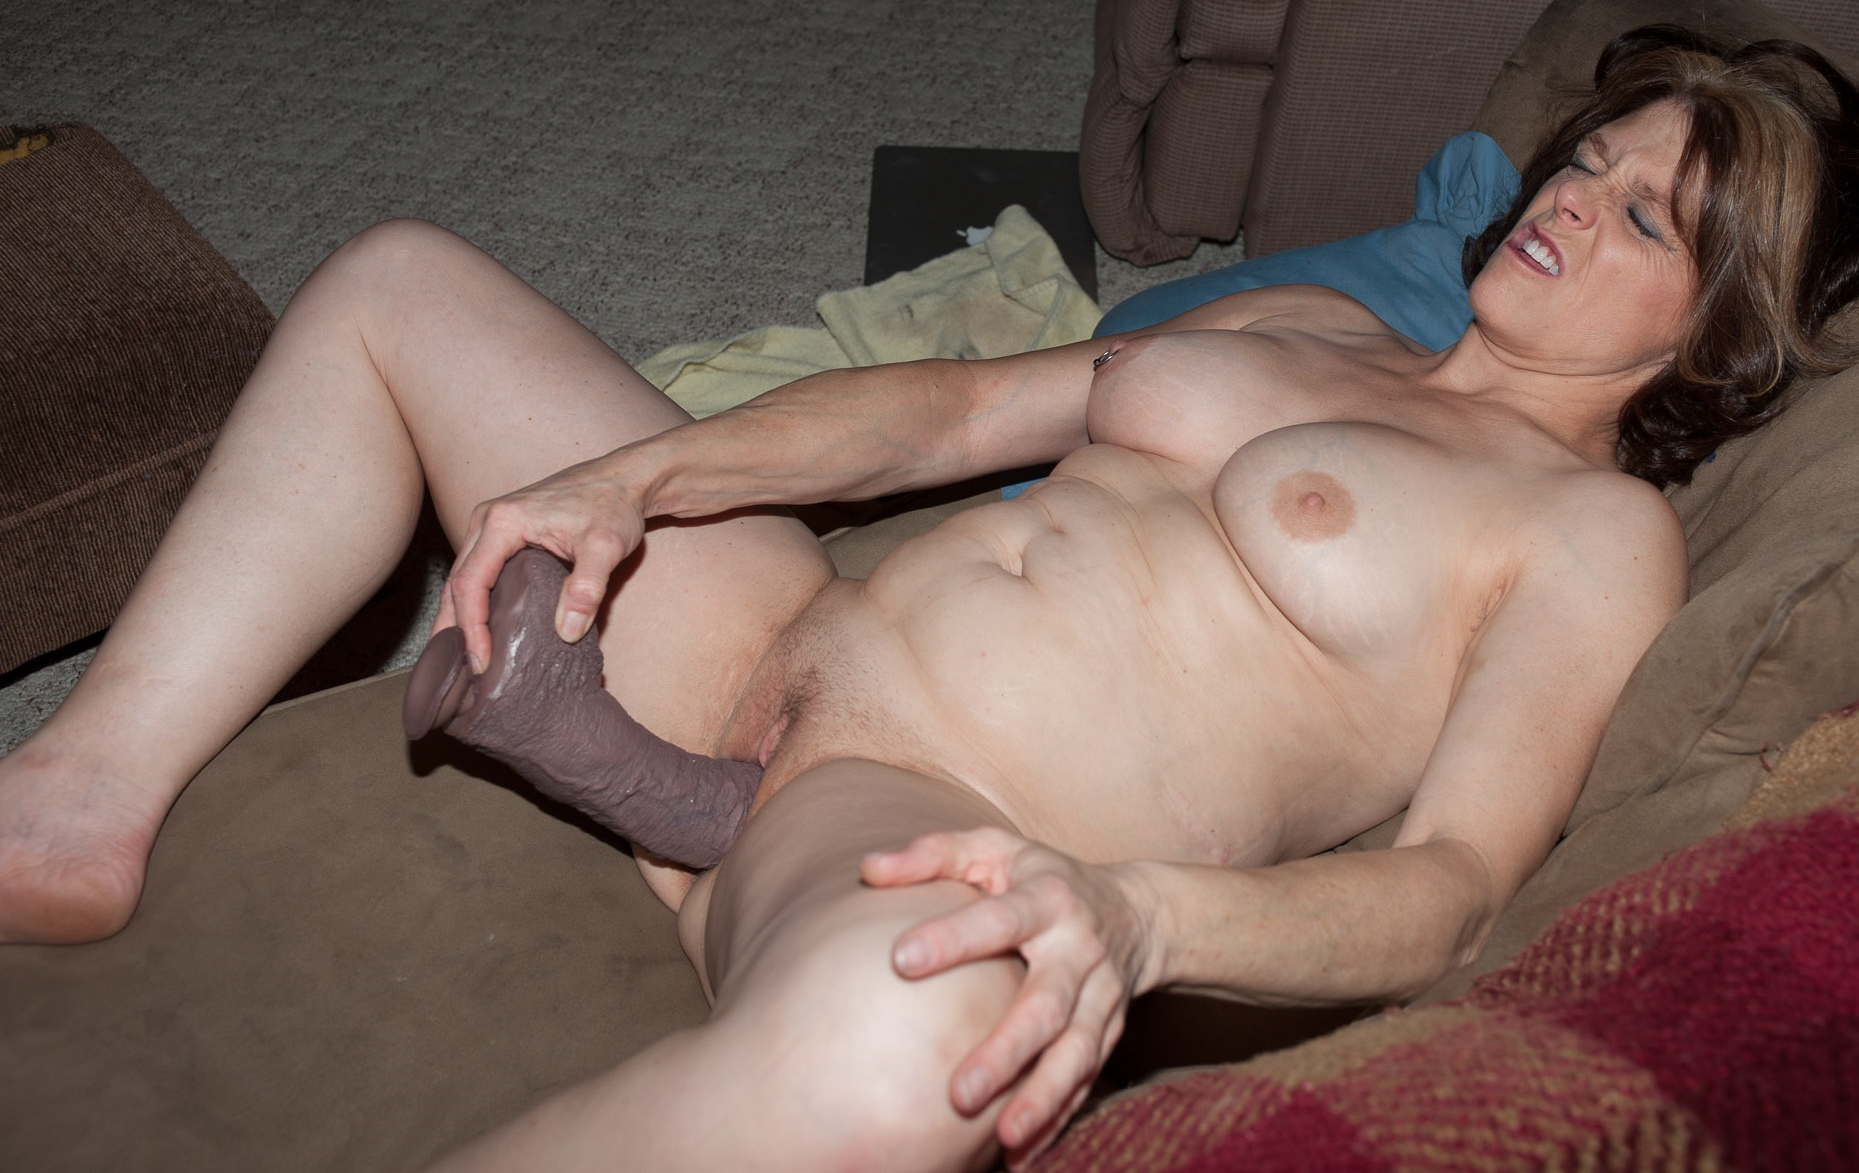 Pussy Spread - A Pussy Spread Wide Open and Ready - MOTHERLESS.COM